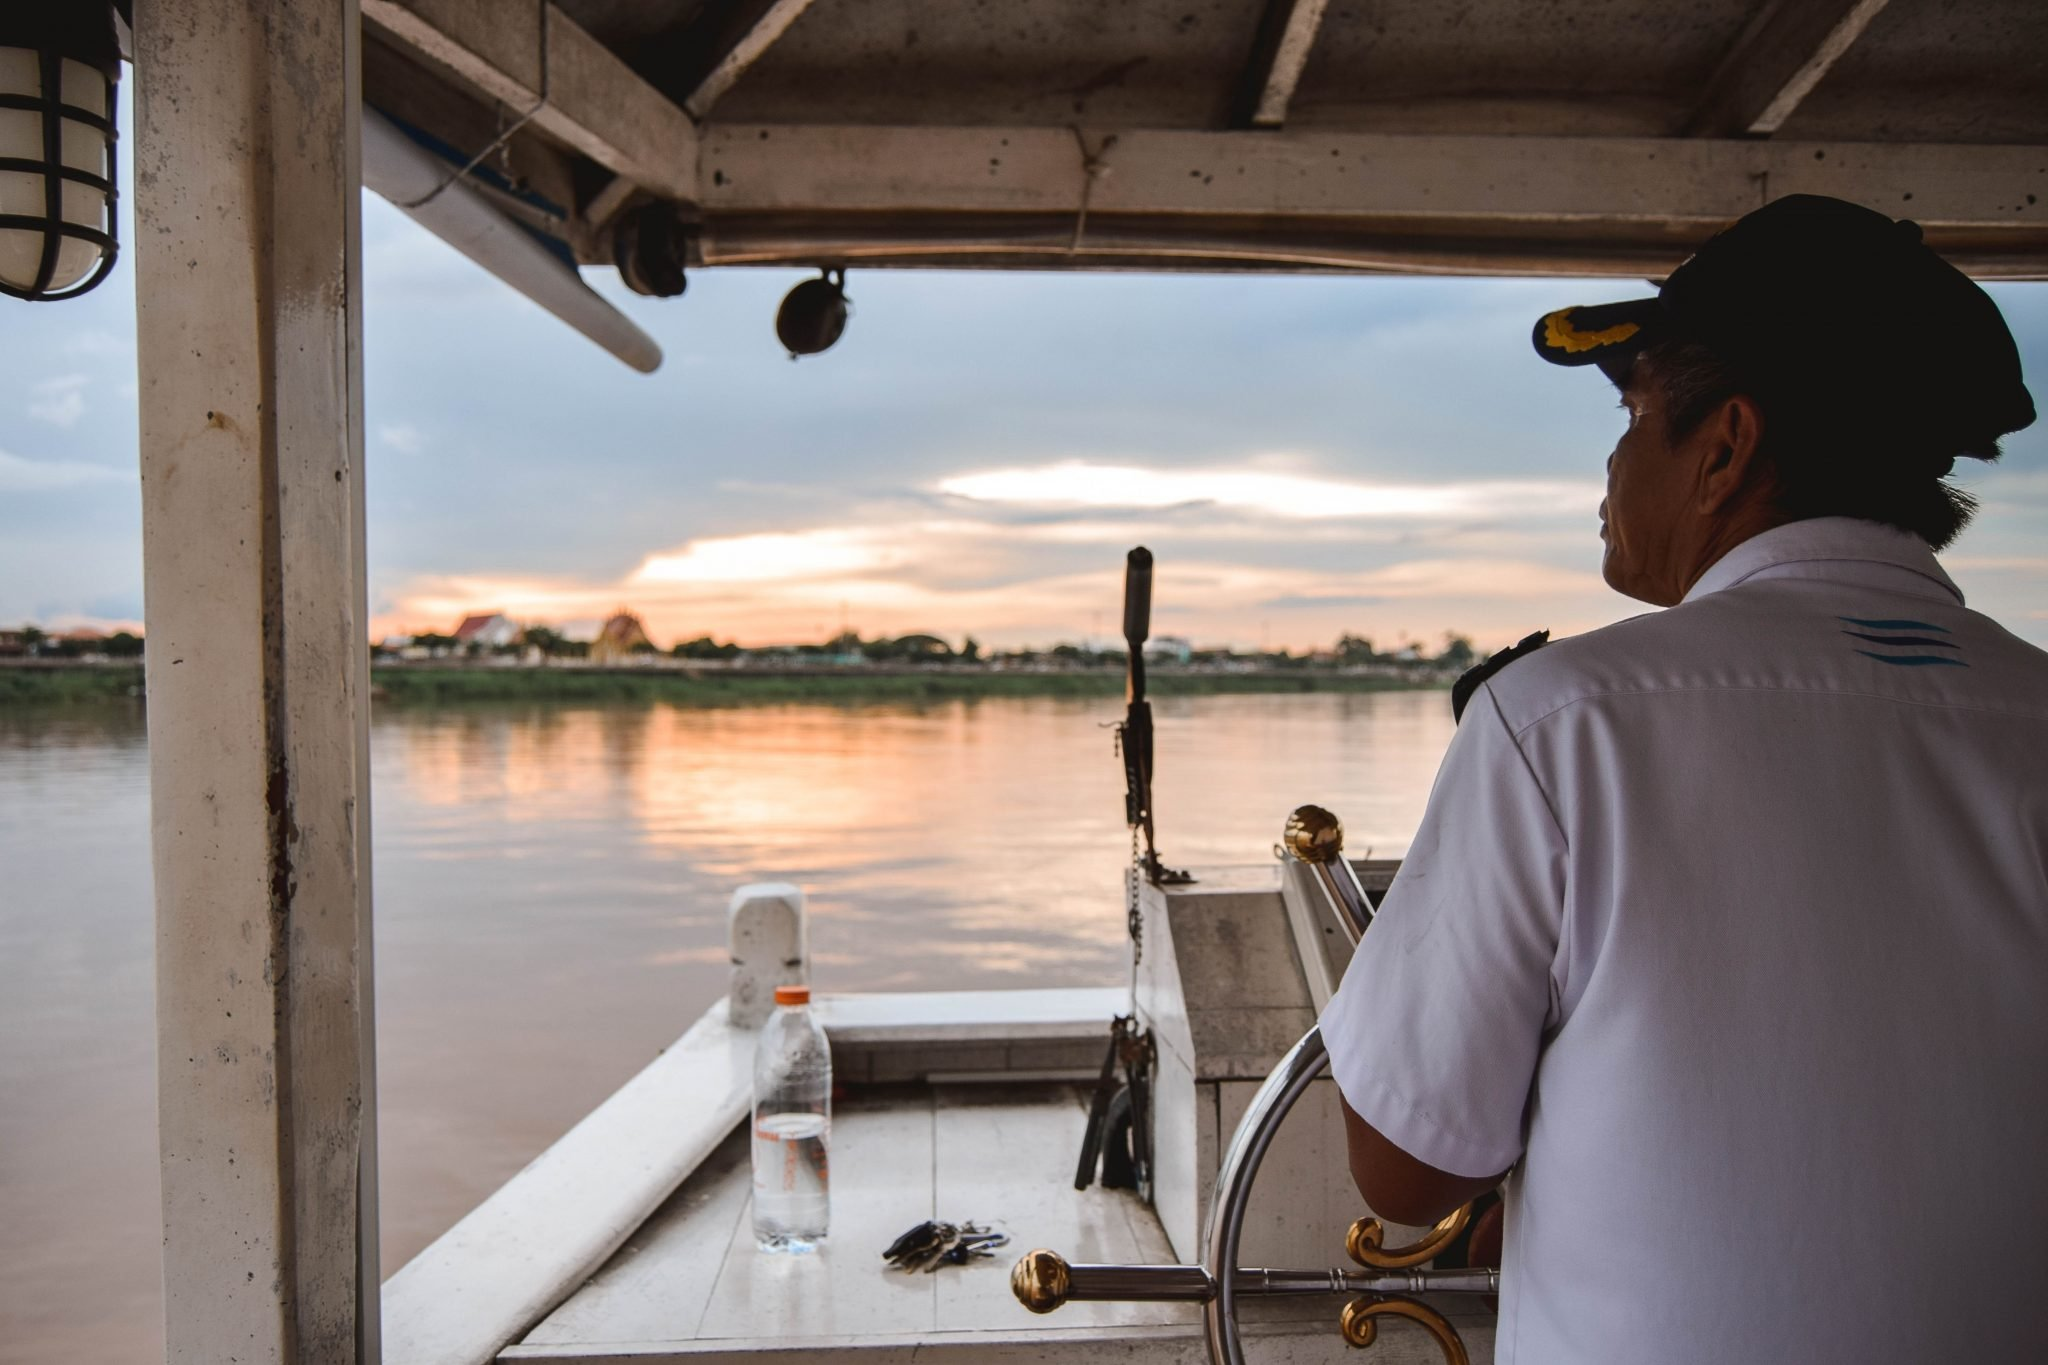 Wanderers & Warriors - 7 Things To Do In Nakhon Phanom - Mekong River Cruise Thailand